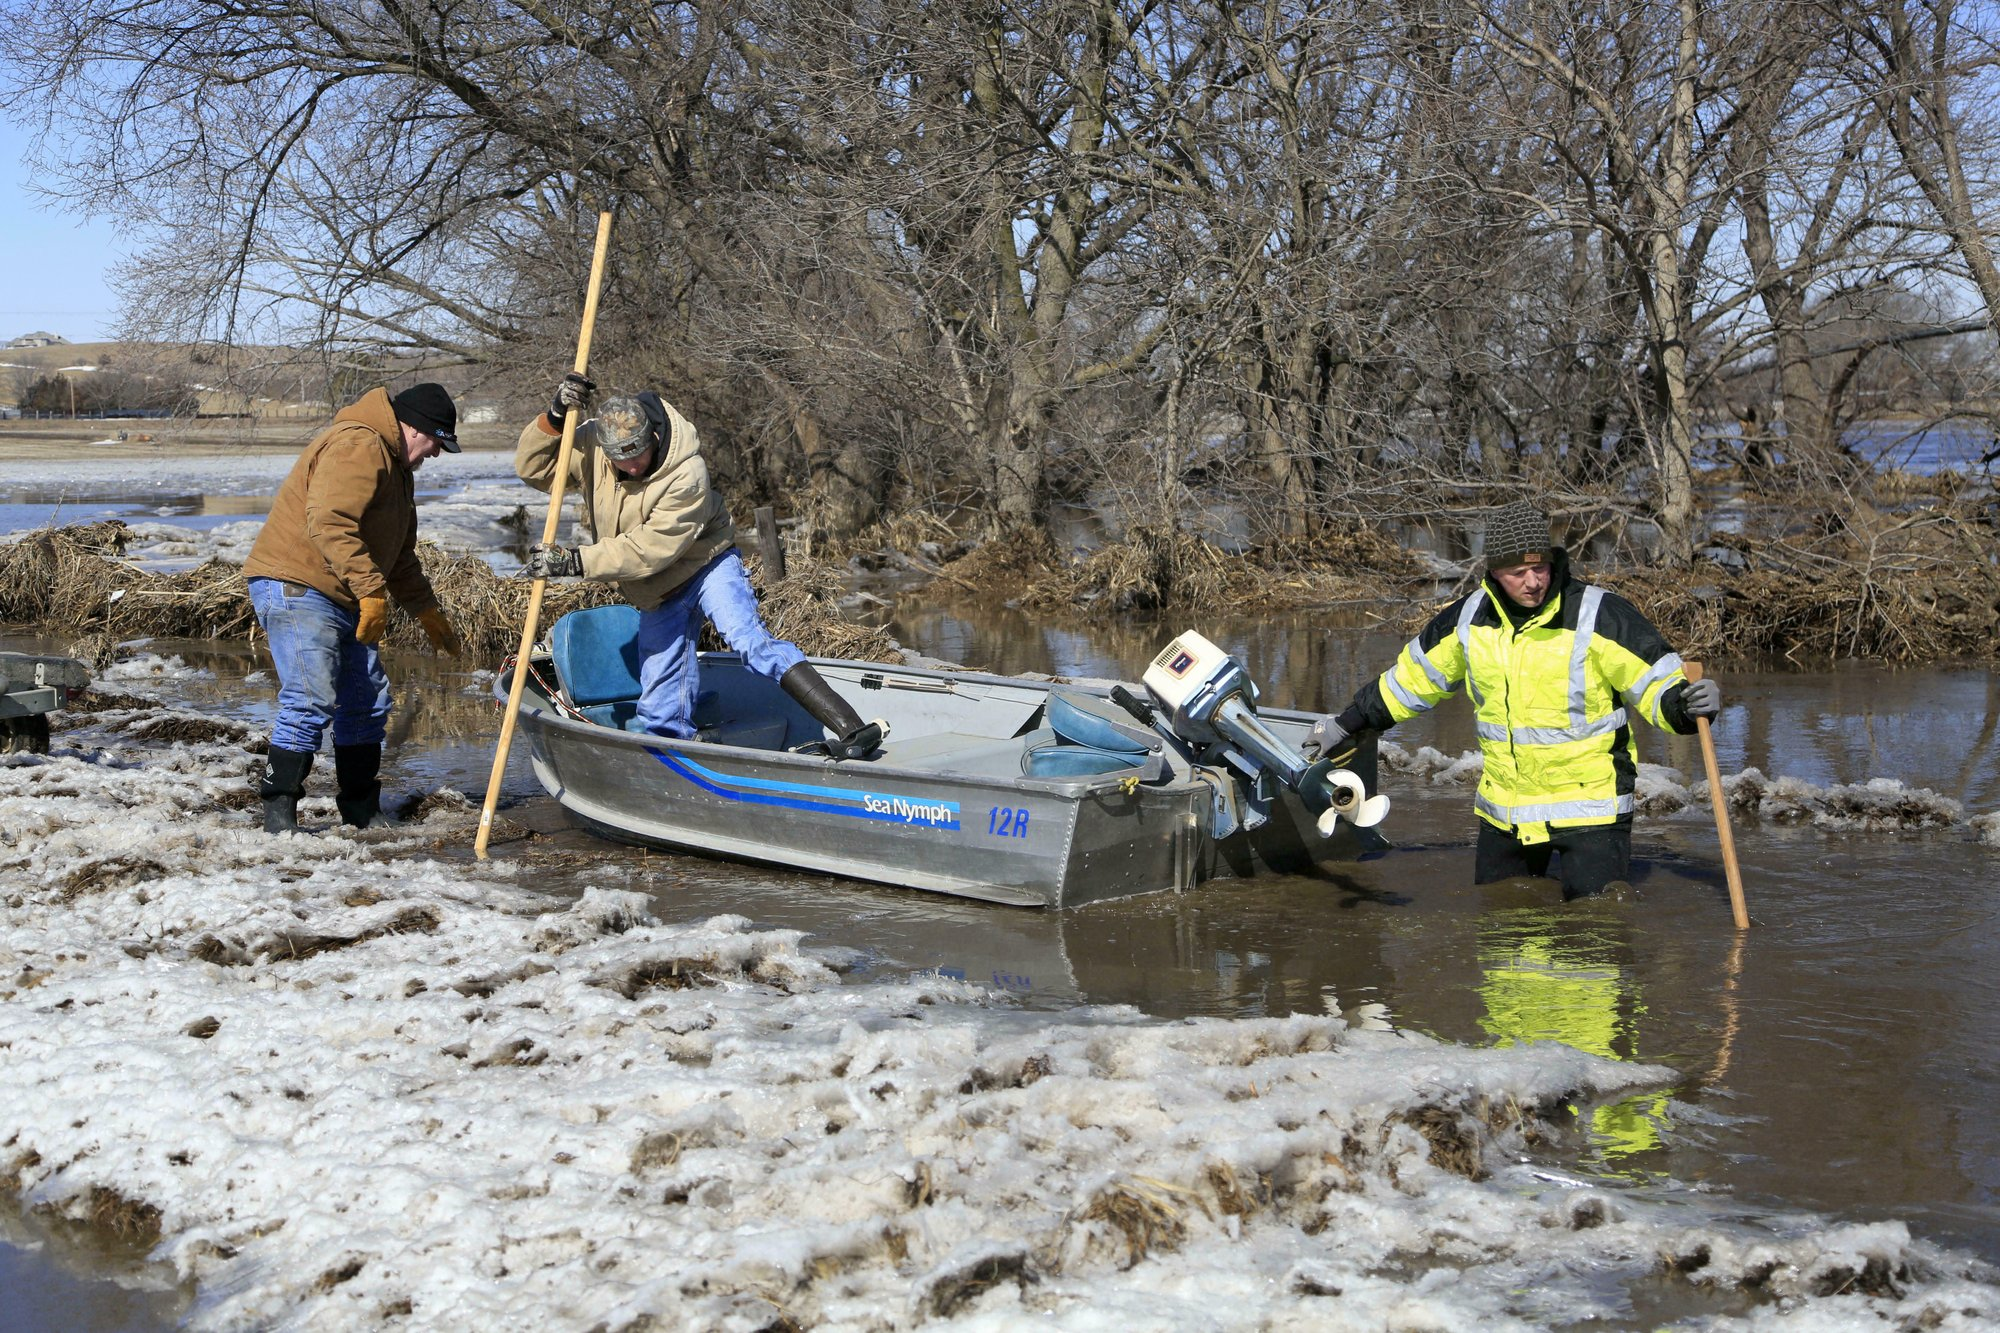 Rescues, evacuations as floodwaters breach levees in US Midwest